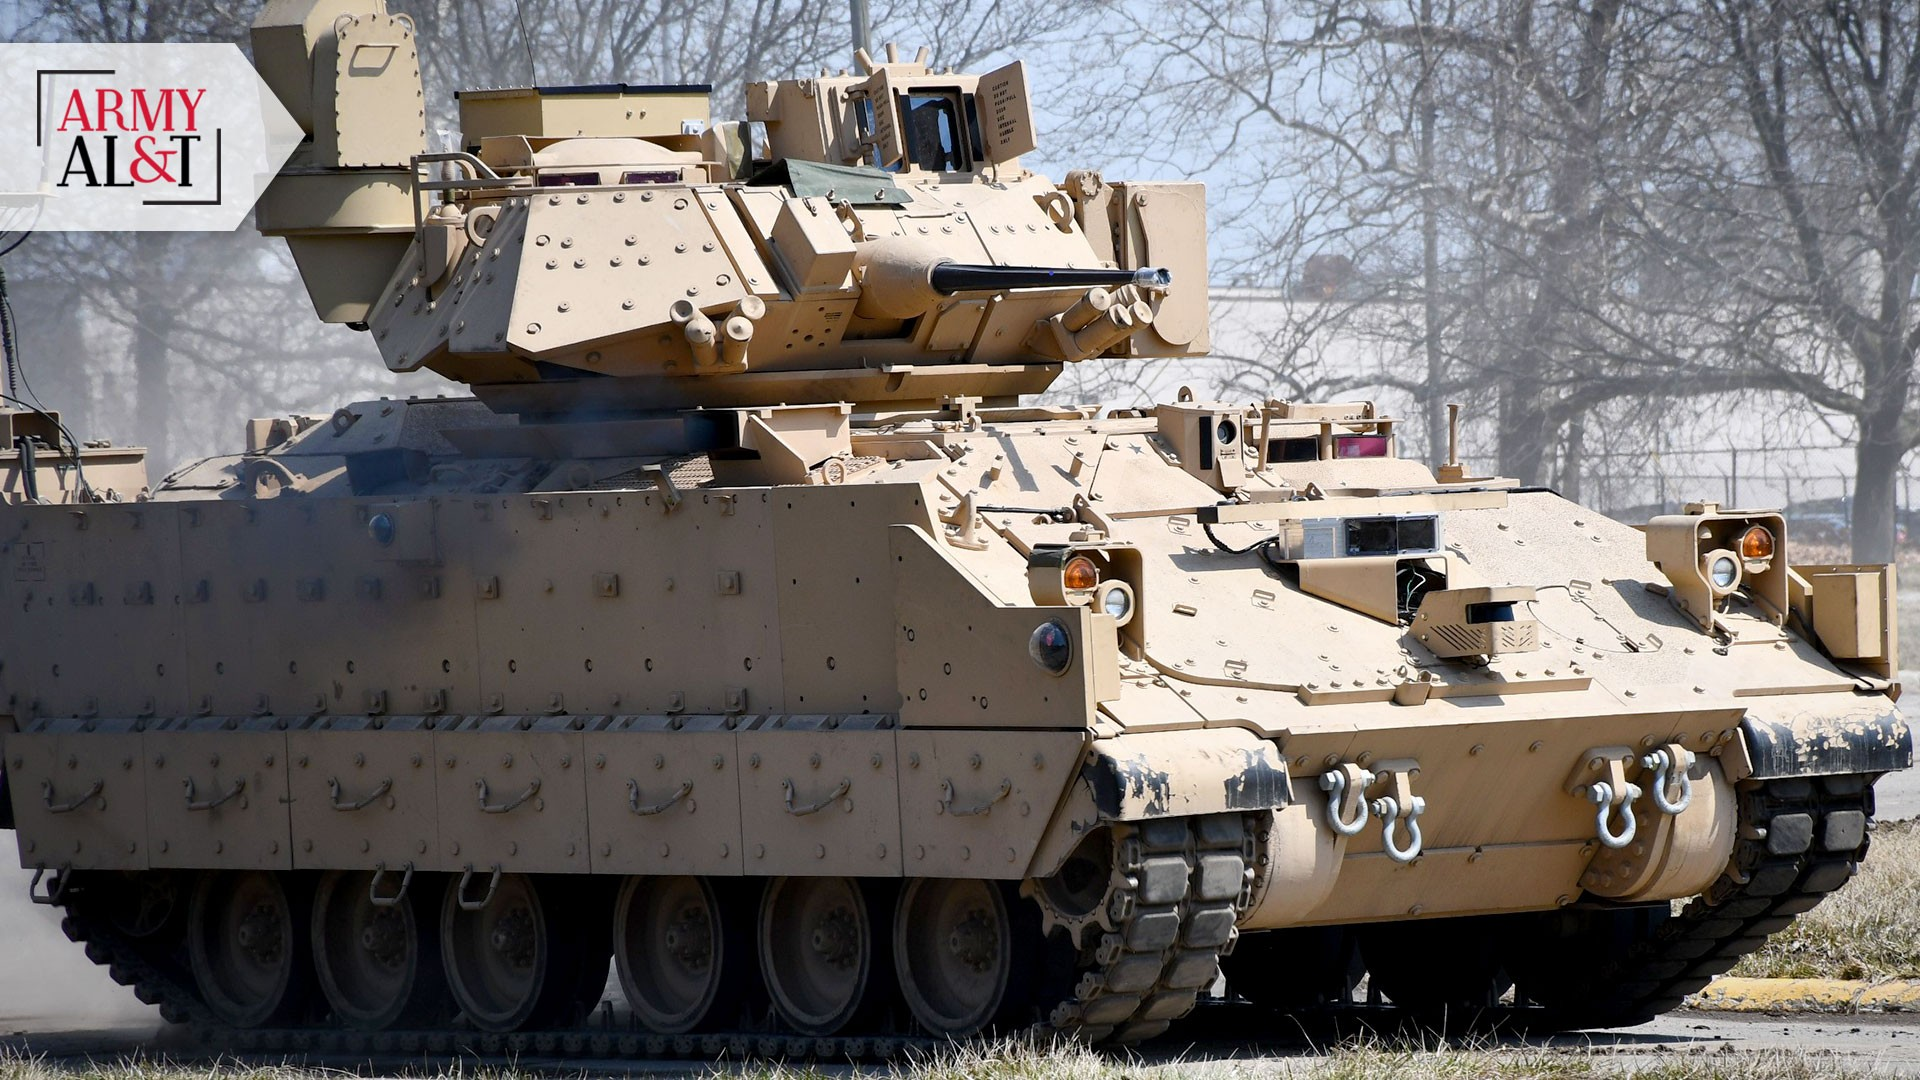 RDECOM's road map to modernizing the Army: Next Generation ...